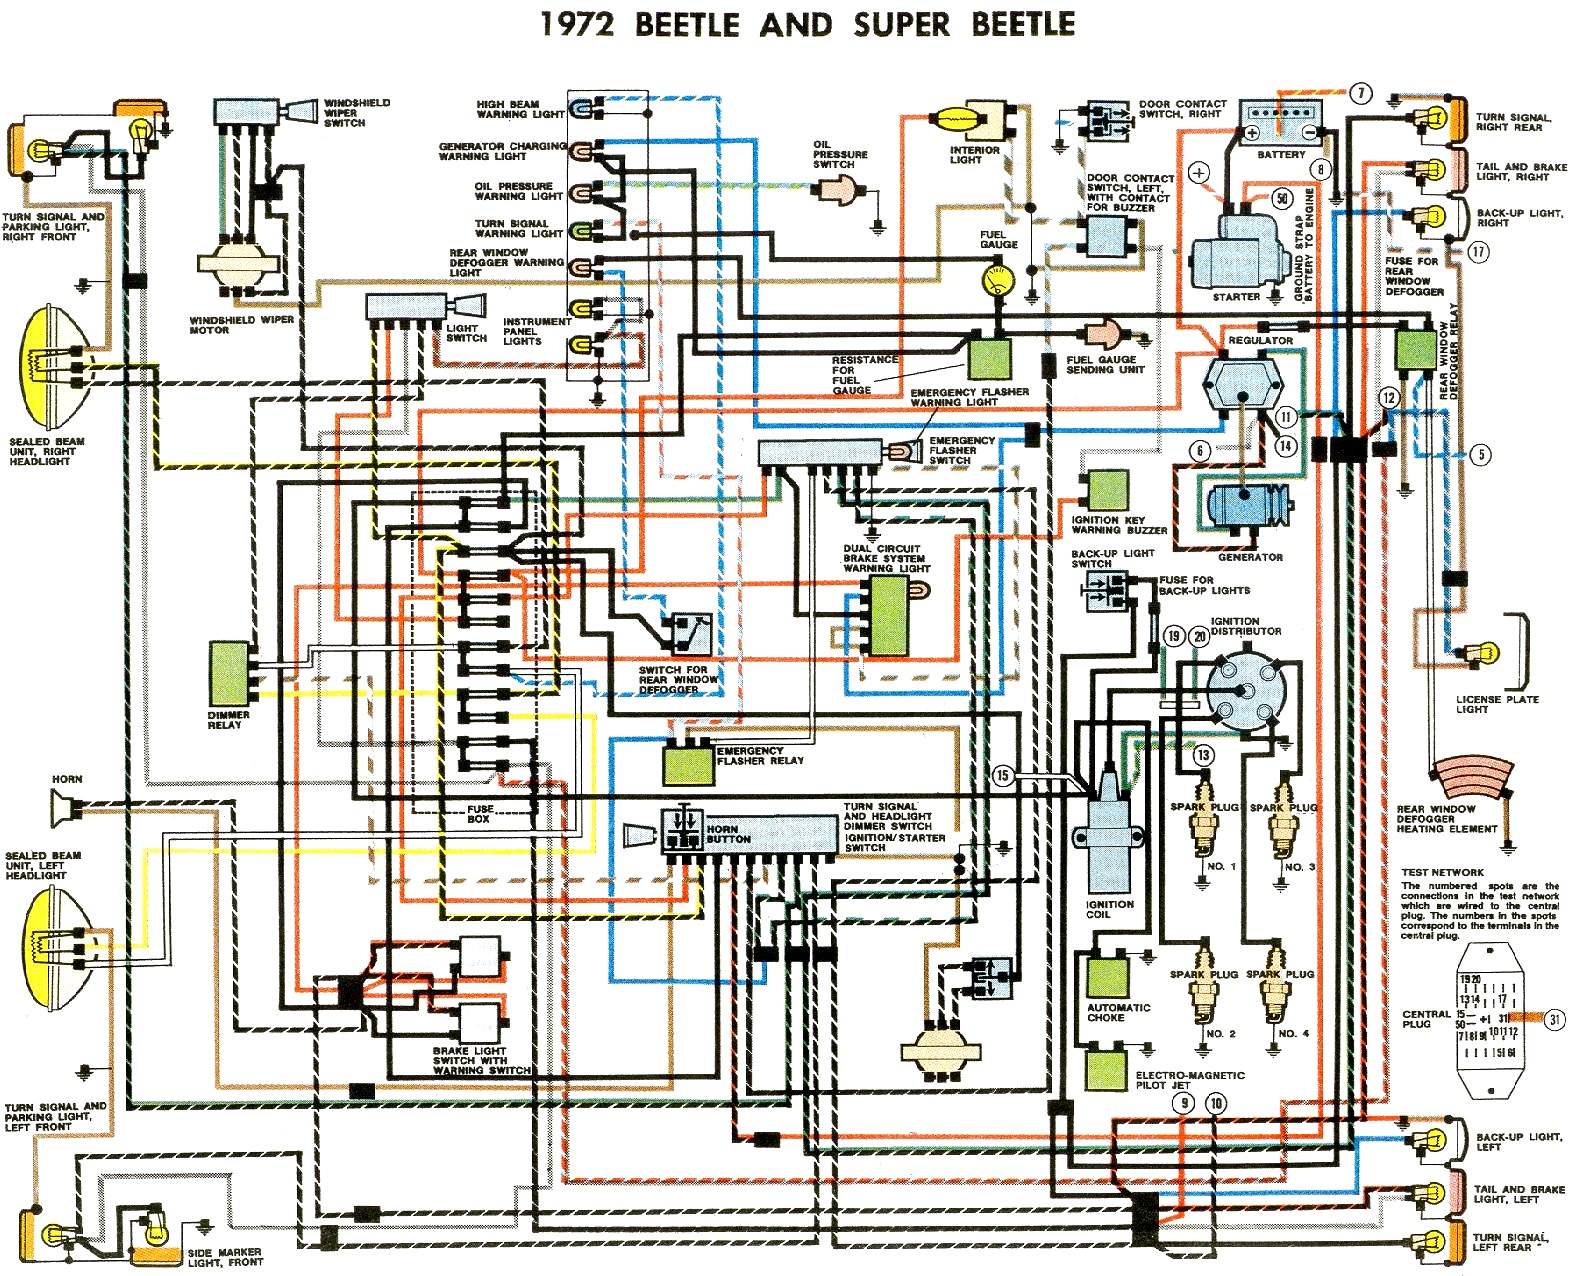 Electric Wiring Diagram Ford Mustang 2009 Simple Guide About Electrical Symbols As Well 1955 Chevy In 1972 Beetle Thegoldenbug Com